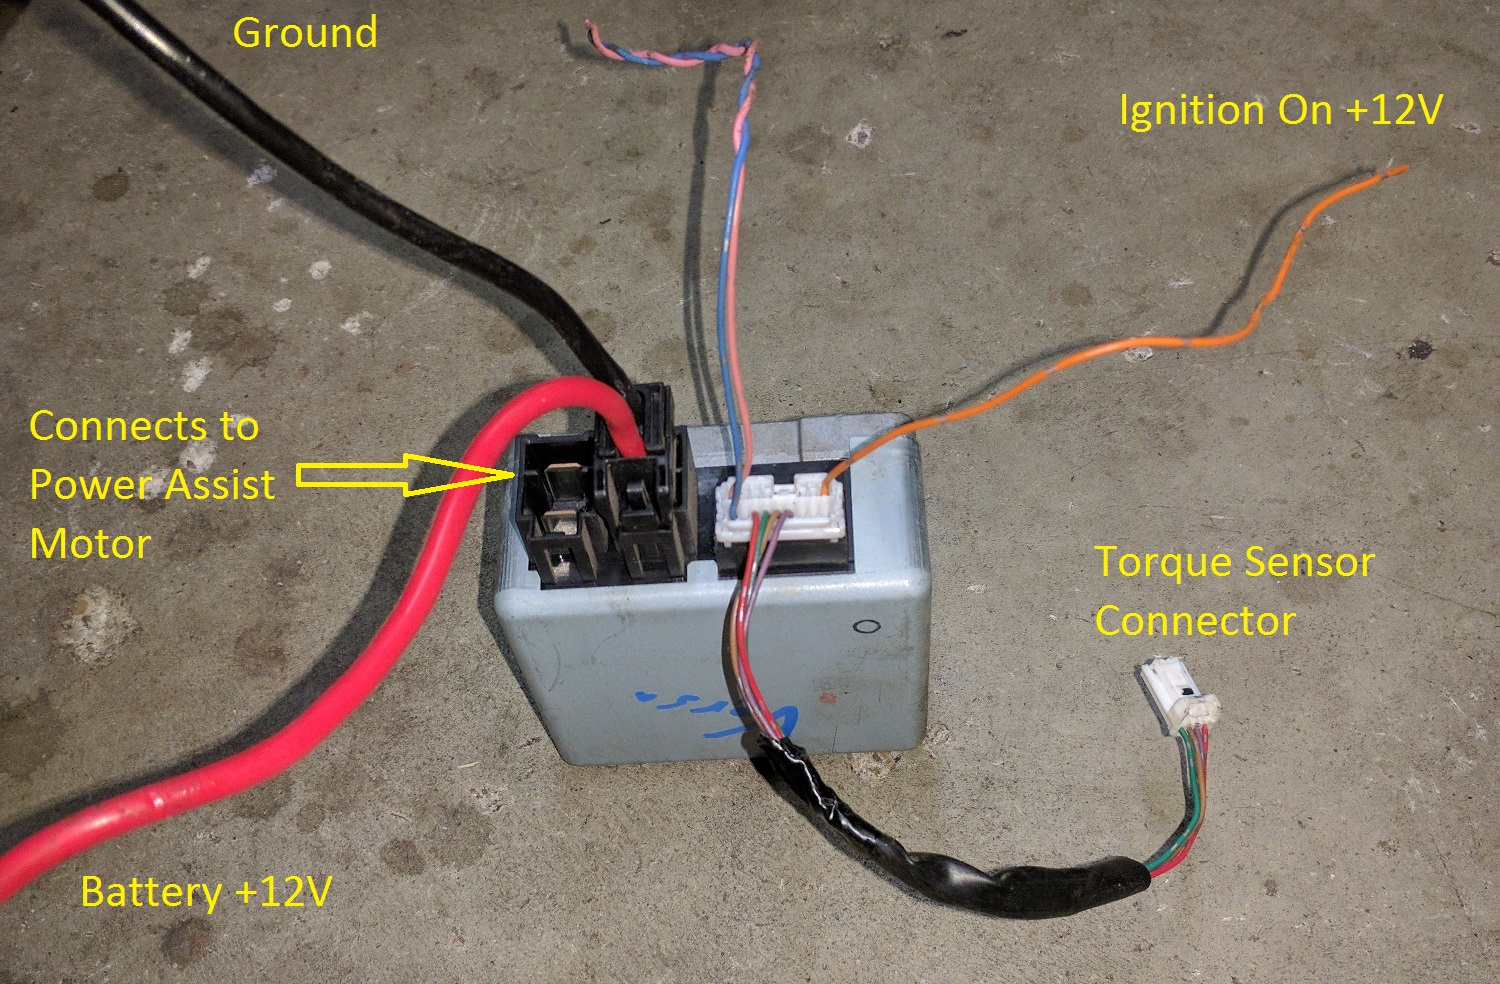 54 Chevy Turn Signal Wiring Diagram 35 Electric Power Steering With Fail Safe No Ebay